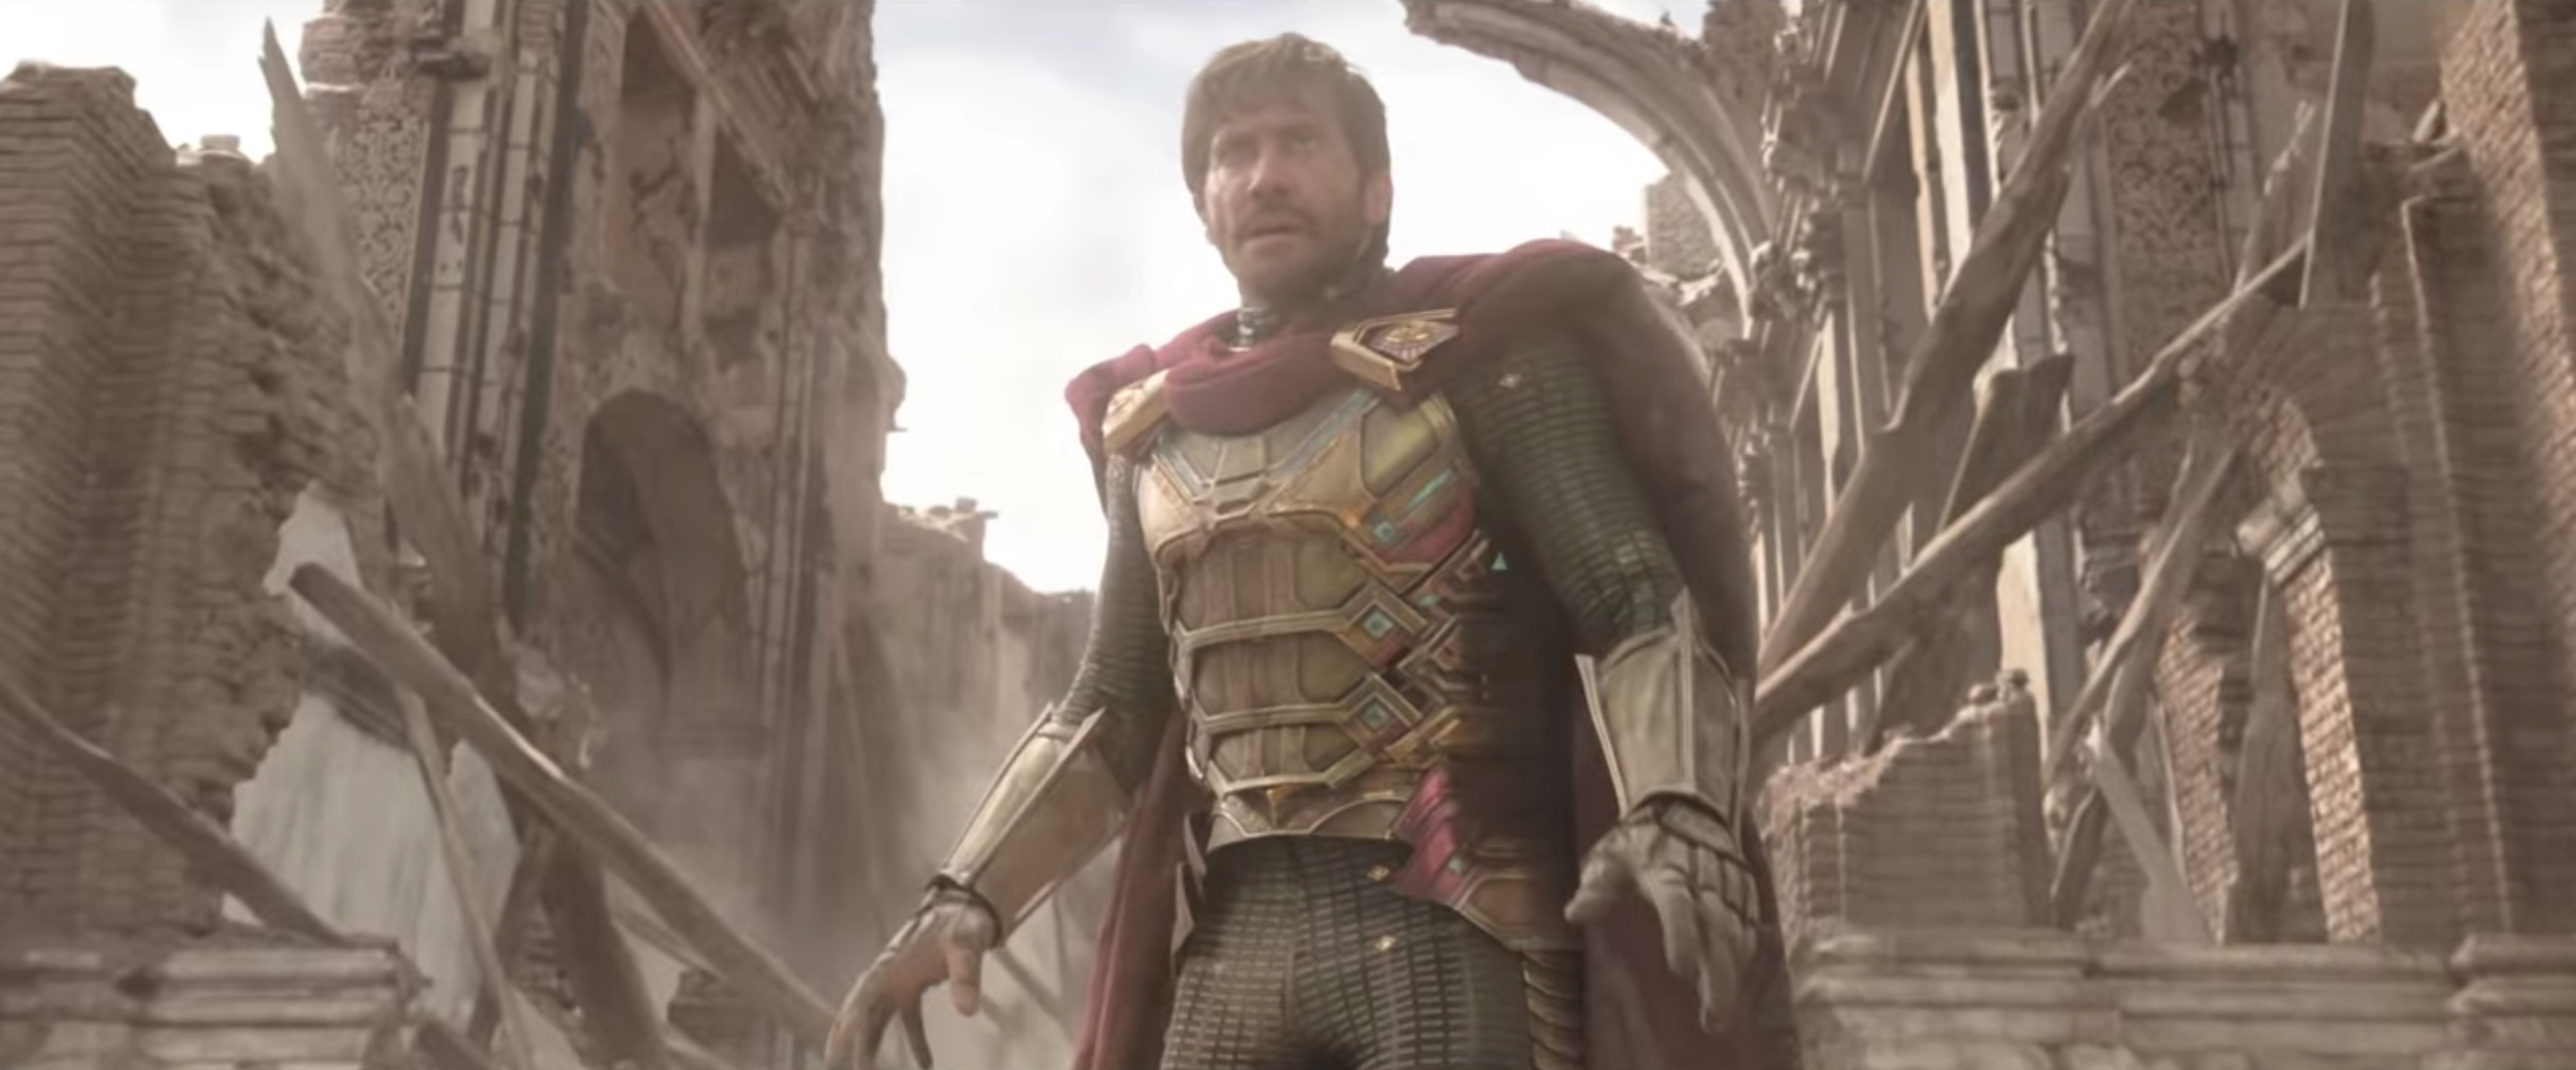 Spider-Man: Far From Home will feature Jake Gyllenhaal as Mysterio, the film's primary villain.